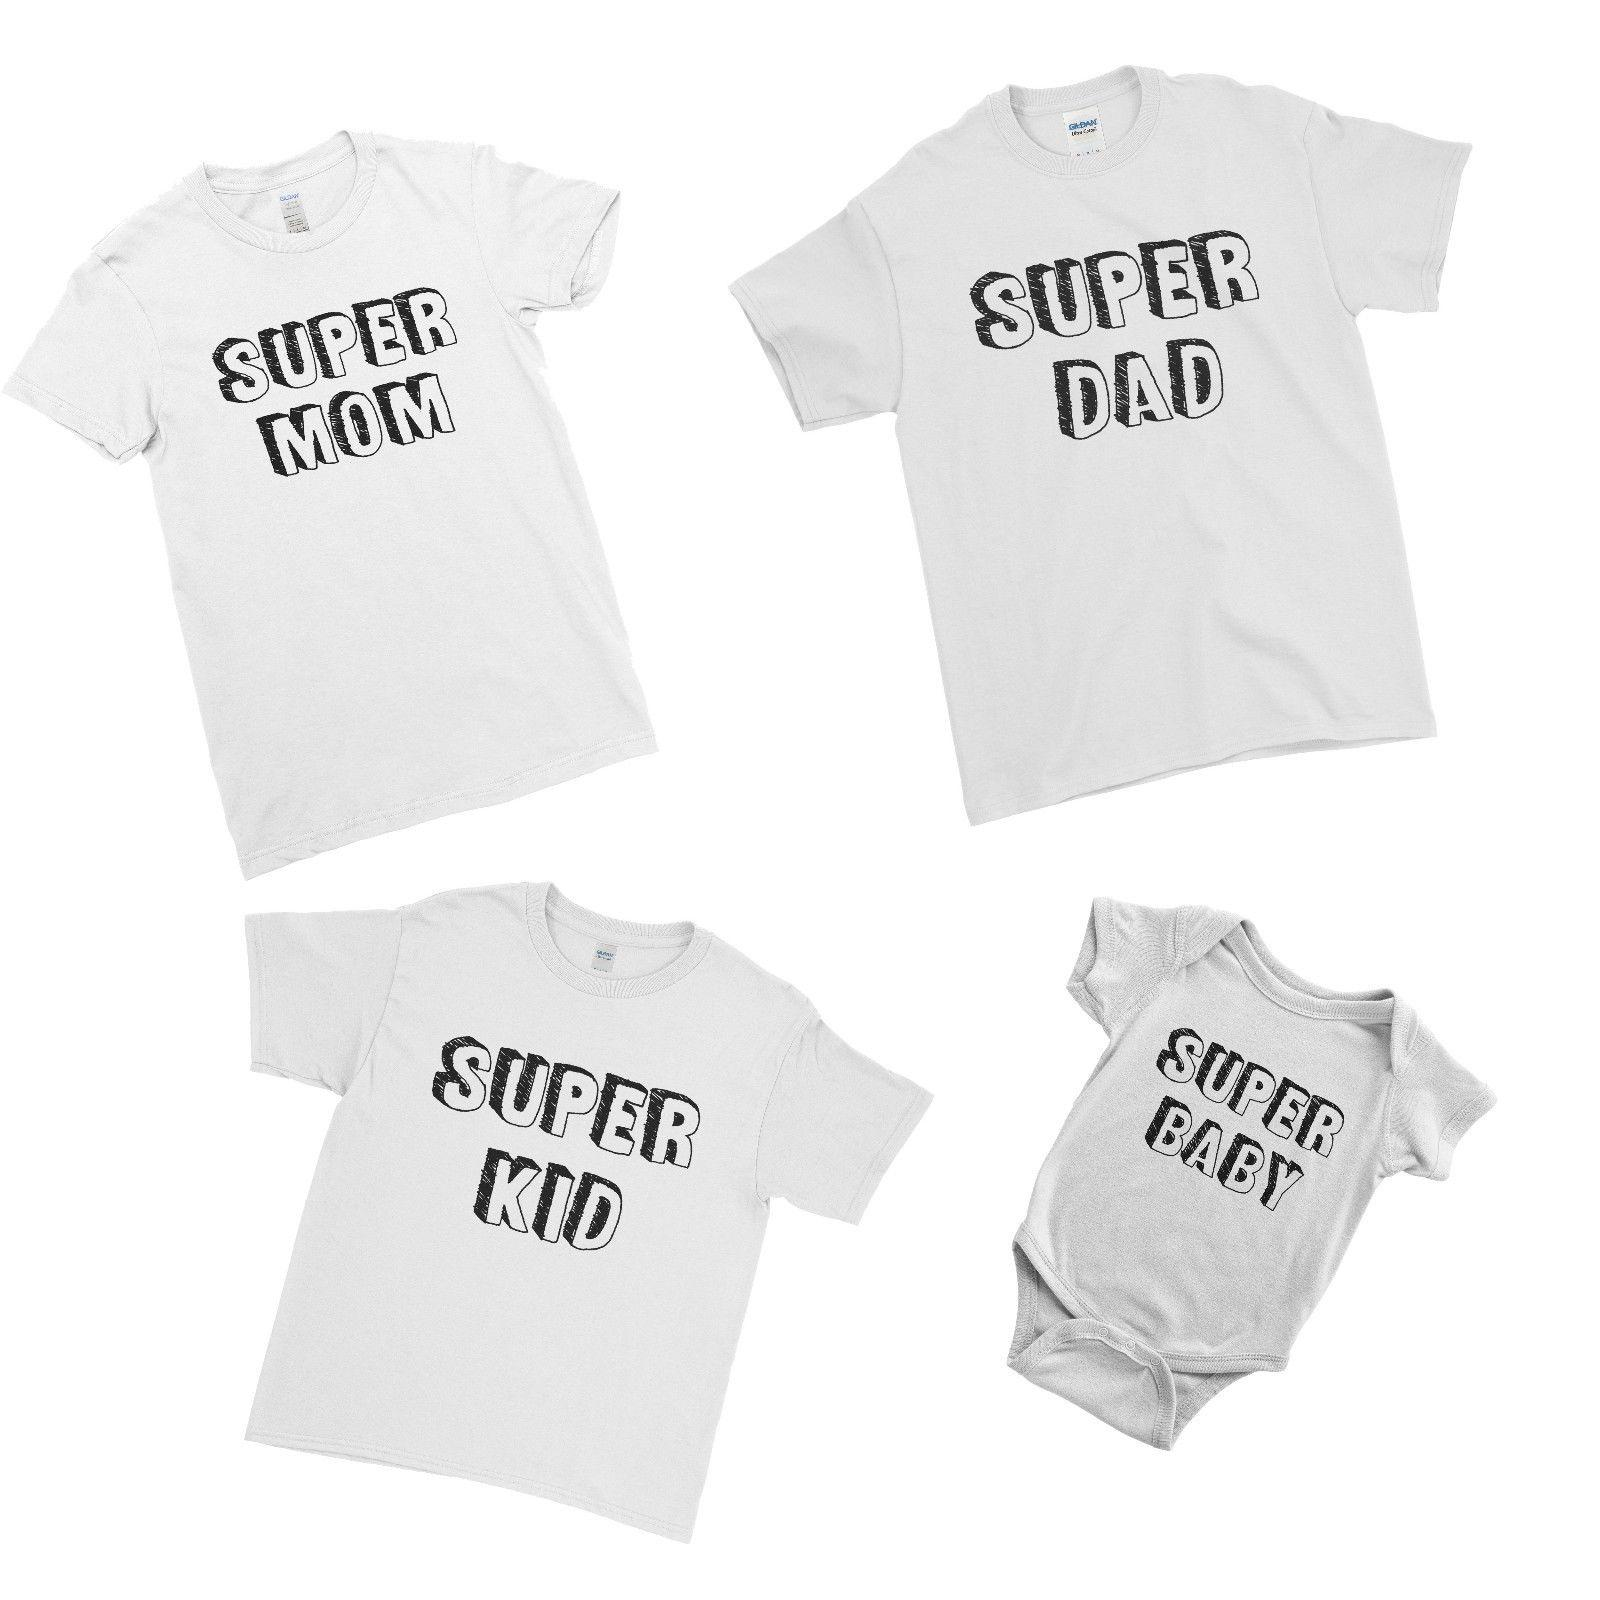 c0303266342 Super Dad Mom Baby Bodysuit First Father S Matching Family Couple Team T  Shirt Casual Funny Unisex Tee Gift Awesome Tee Different T Shirts From  Stop to shop ...